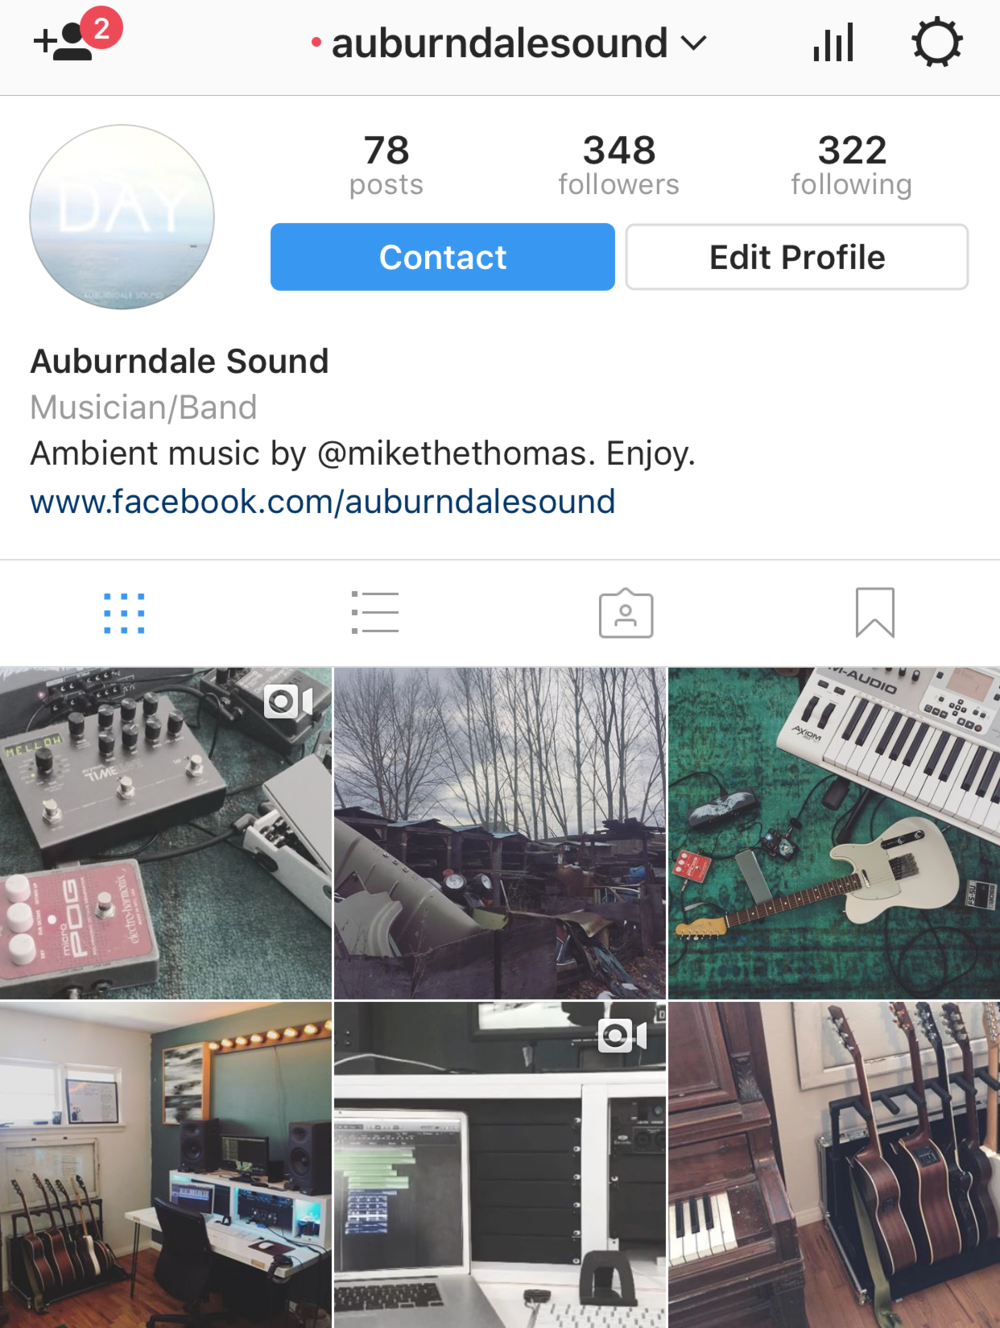 Follow Click here to learn more about how to keep up with Auburndale Sound on social media.